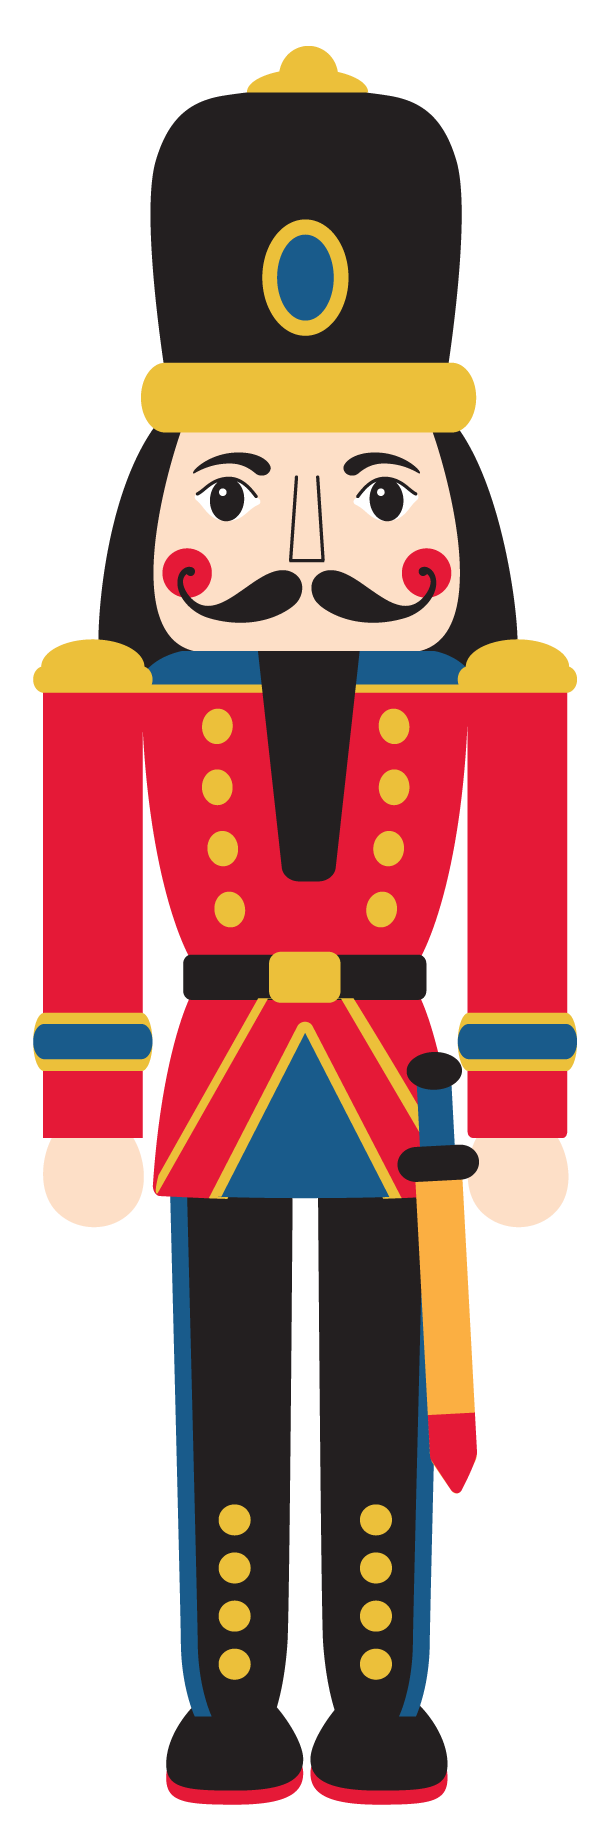 banner royalty free download Suite at getdrawings com. Nutcracker face clipart